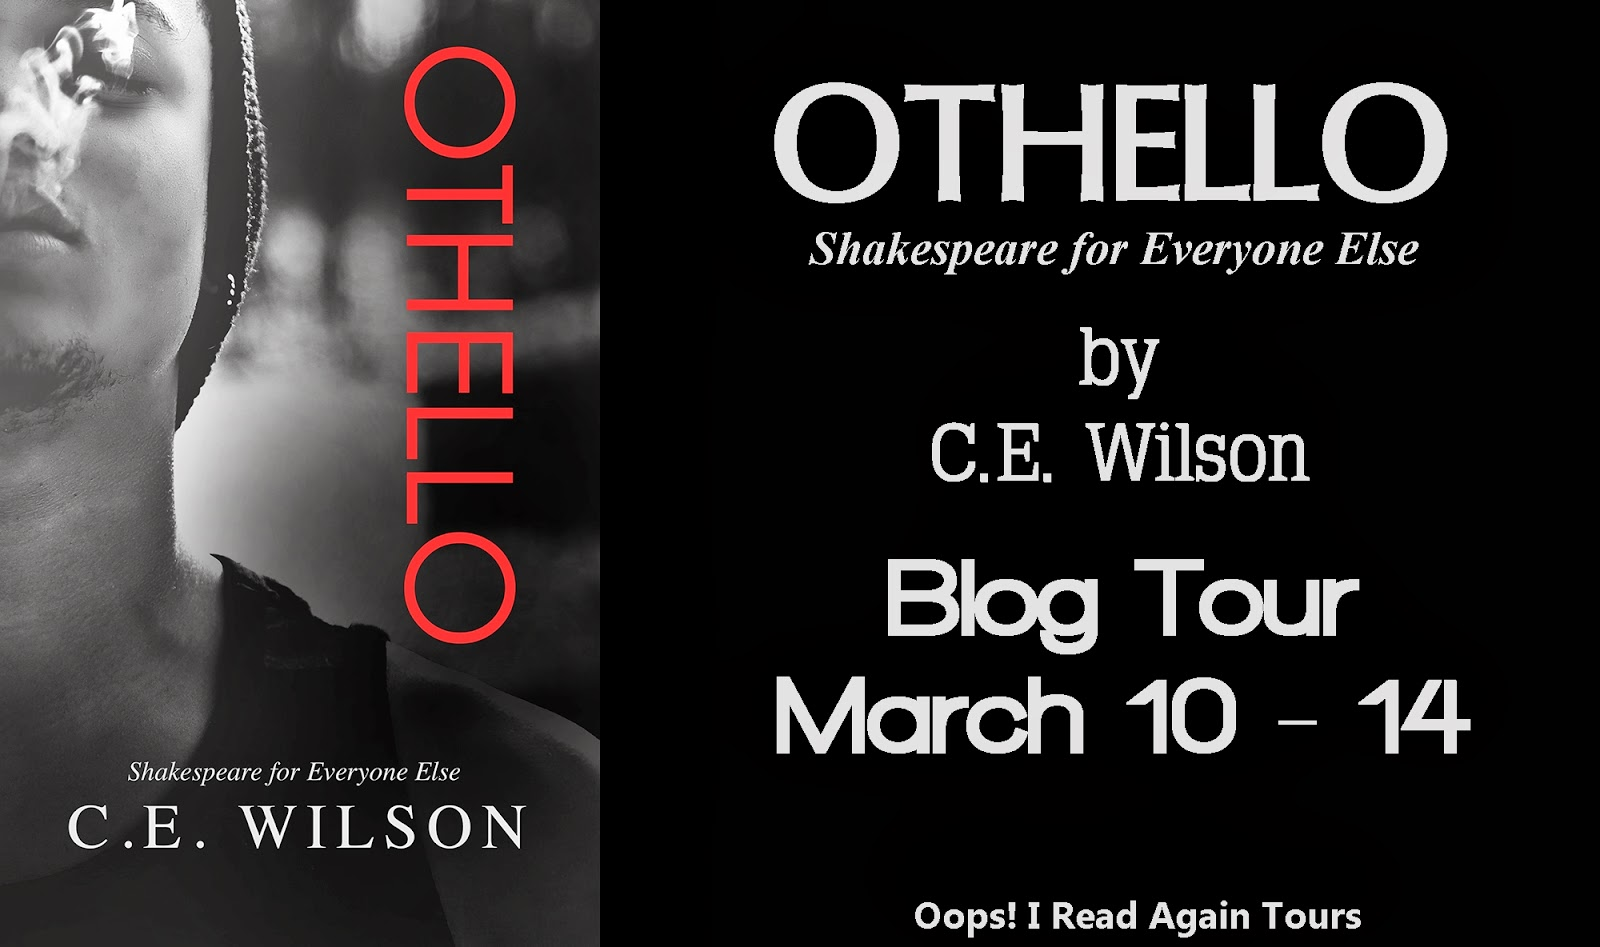 http://oopsireadabookagain.blogspot.co.uk/2014/02/blog-tour-invite-othello-by-ce-wilson.html